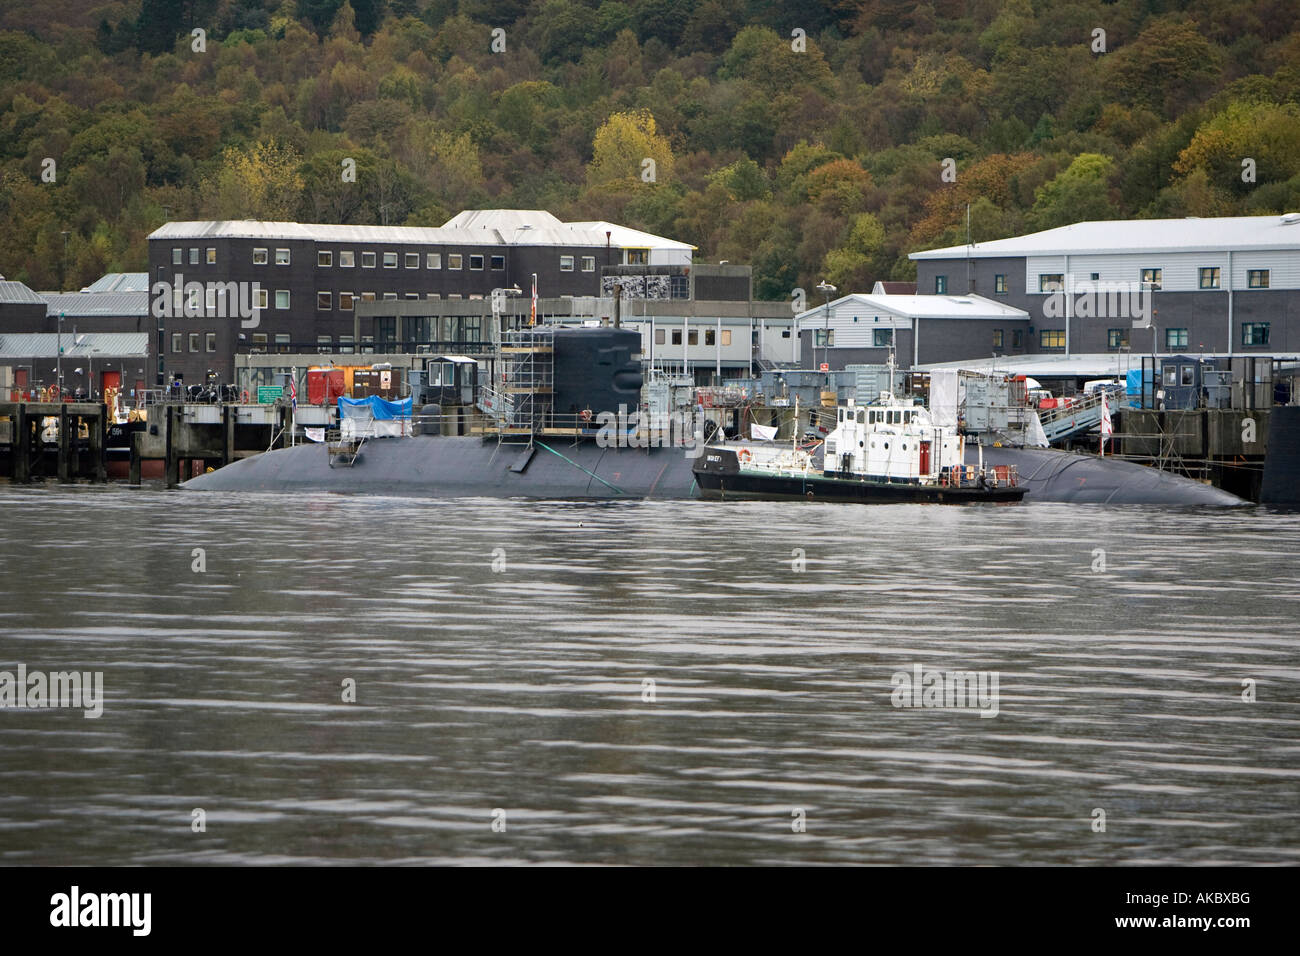 A decommissioned British Navy Nuclear Submarine at Faslane Navel Submarine Base in Gare Loch, Scotland, UK - Stock Image